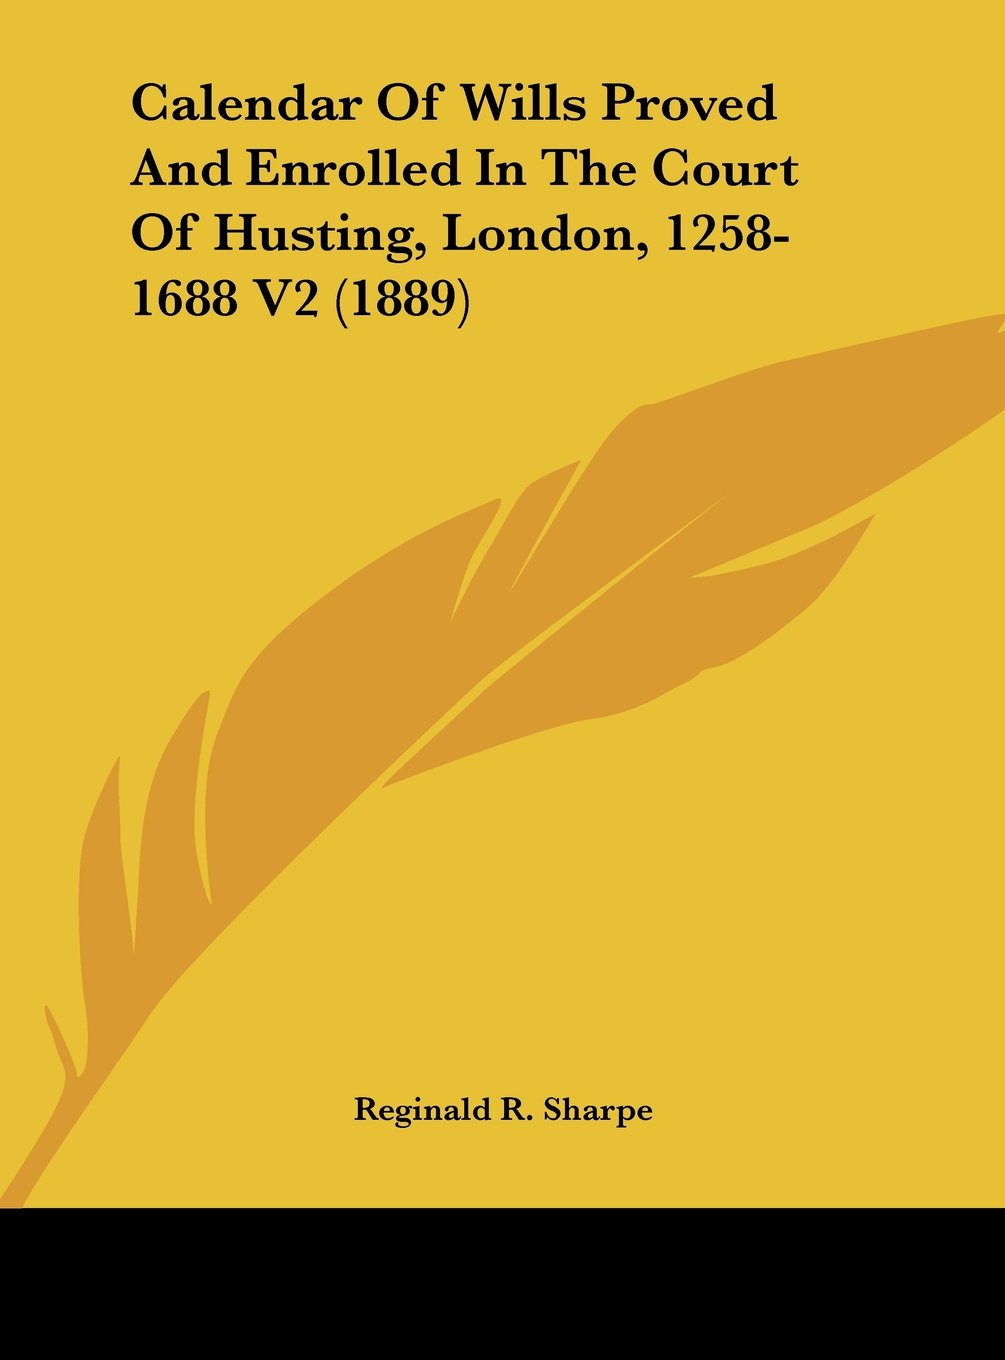 Download Calendar Of Wills Proved And Enrolled In The Court Of Husting, London, 1258-1688 V2 (1889) pdf